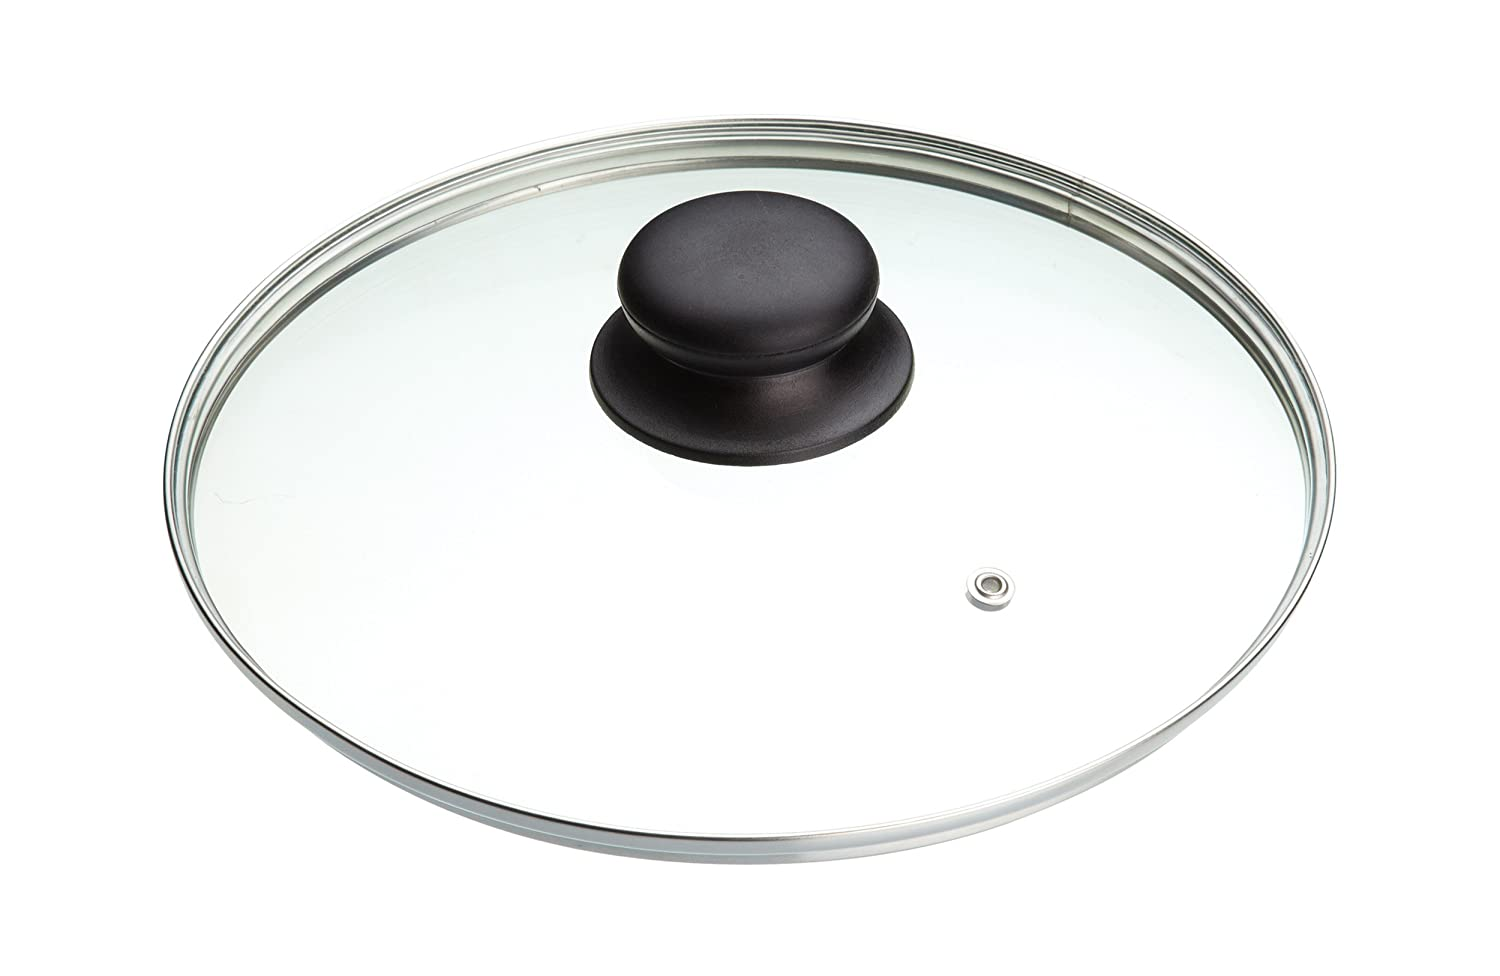 ARIZONE Kitchen Craft Size - (14CM) To (36CM) Frying Pan Saucepan Glass Lid Cover (14cm) AXEBLINK